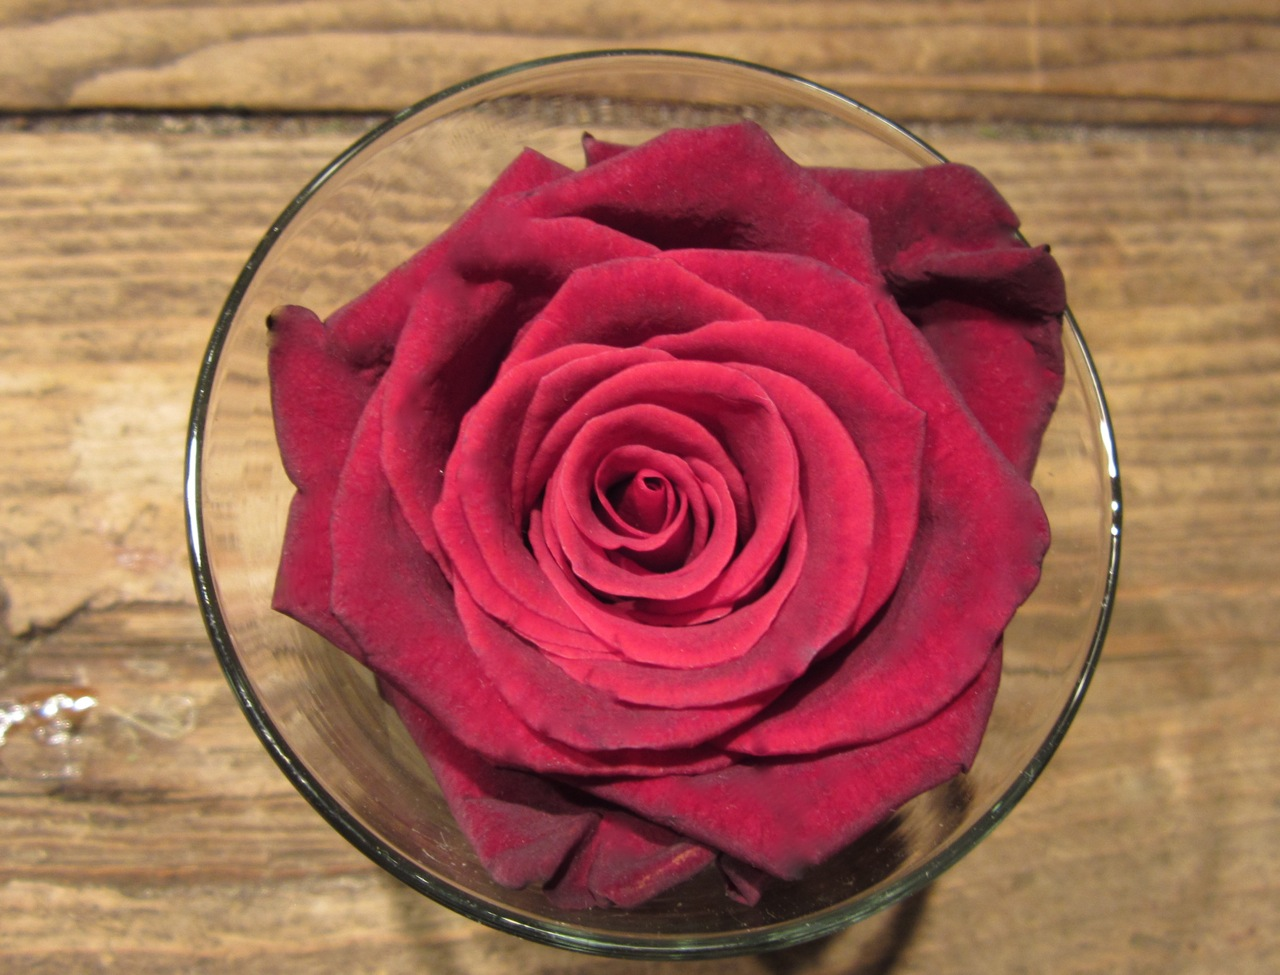 Sammy's Flowers: A Different Shade of Red (roses)